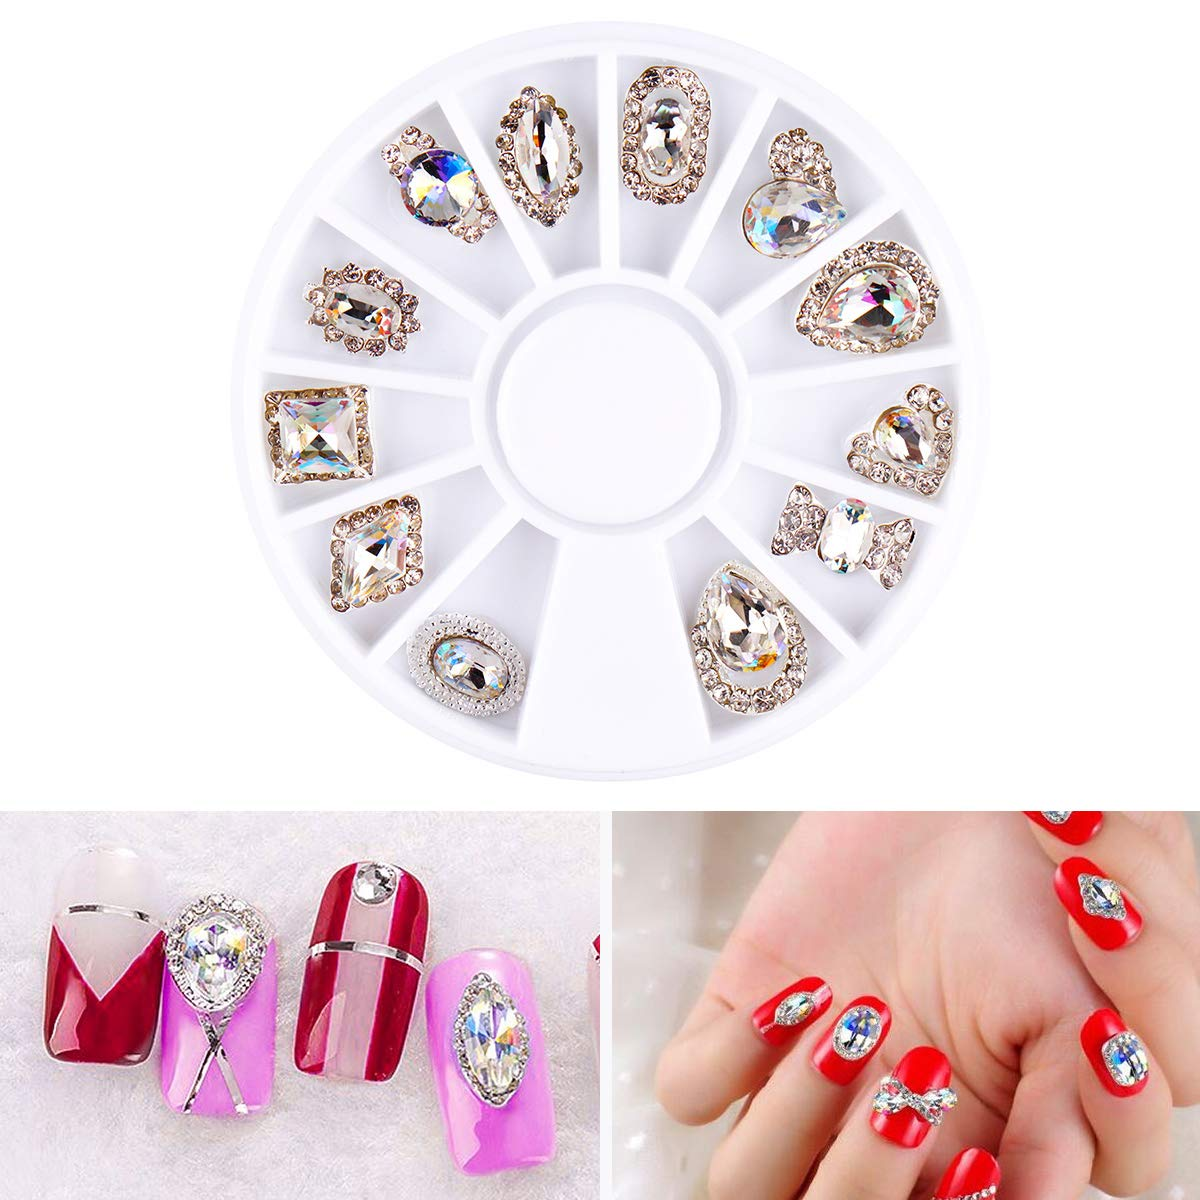 12 Styles Nail Art Rhinestone Gems Decoration Accessories Wheel AB Colorful Crystal Diamond Jewelry Designs Manicure Tools by DKjiaoso